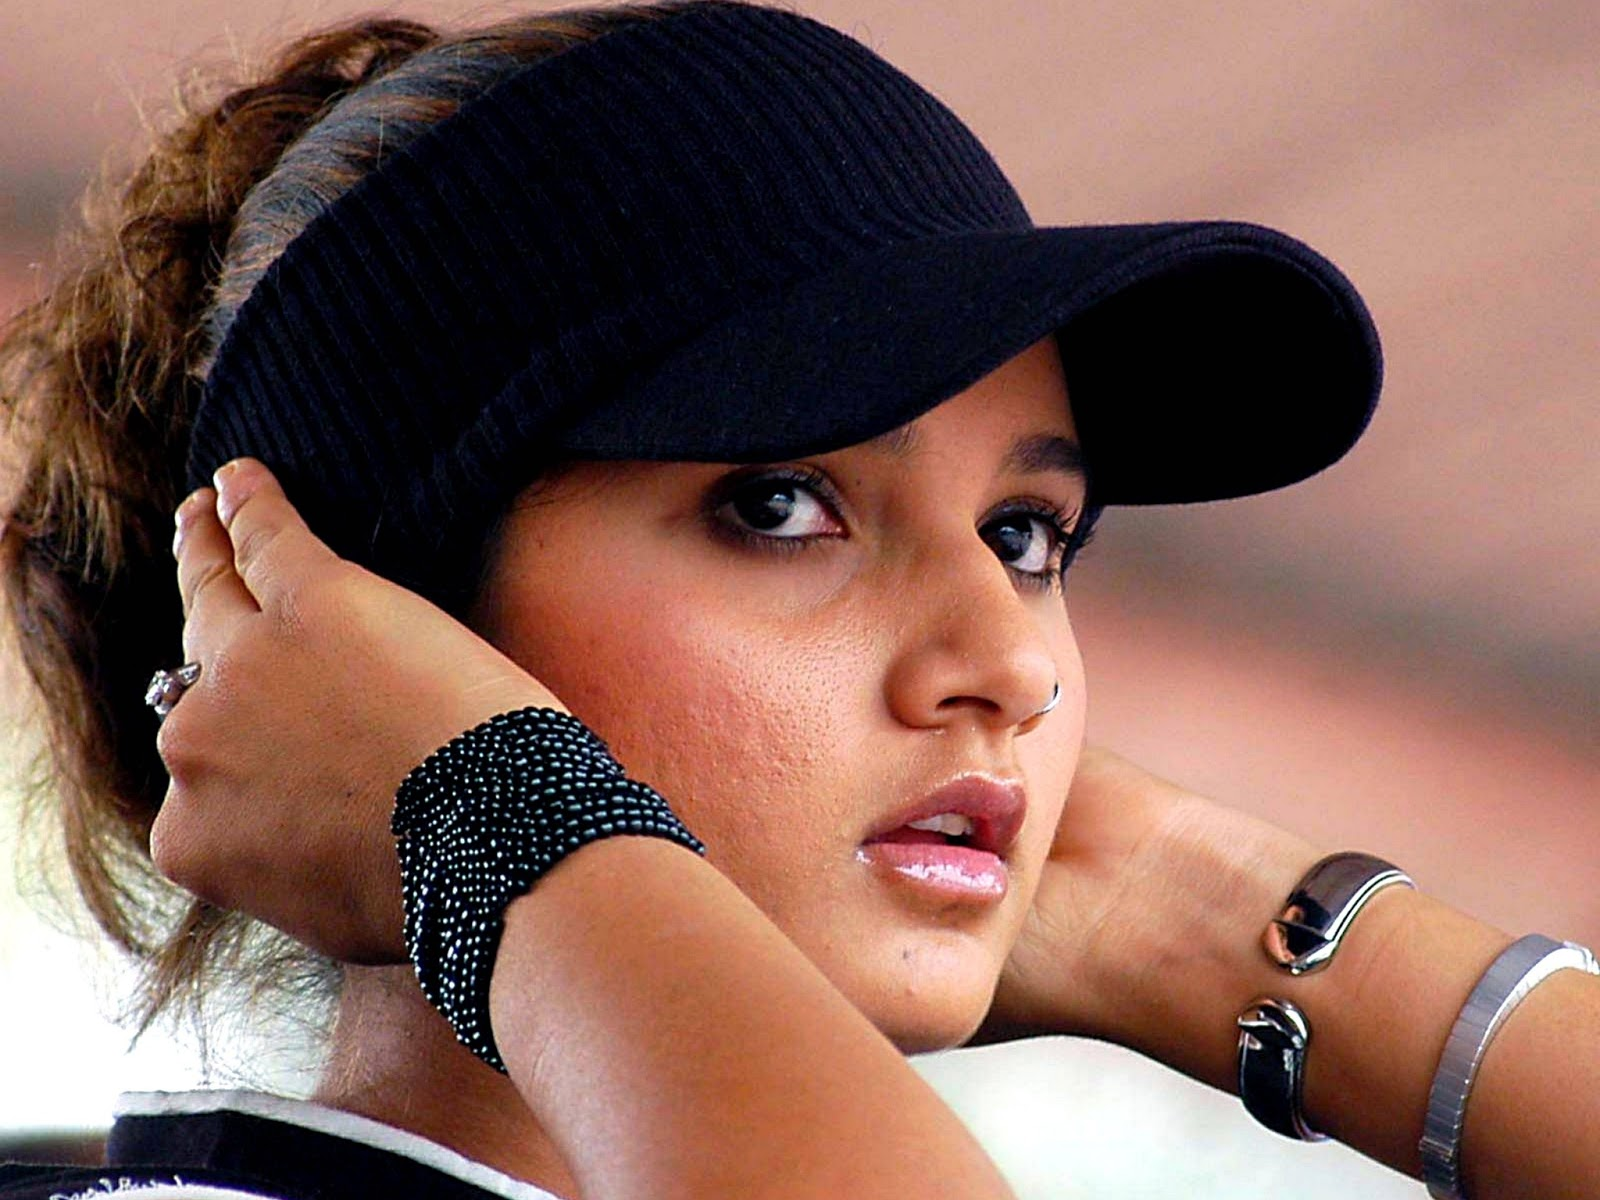 Sania Mirza Hot High Resolution Full Hd Wallpapers Free